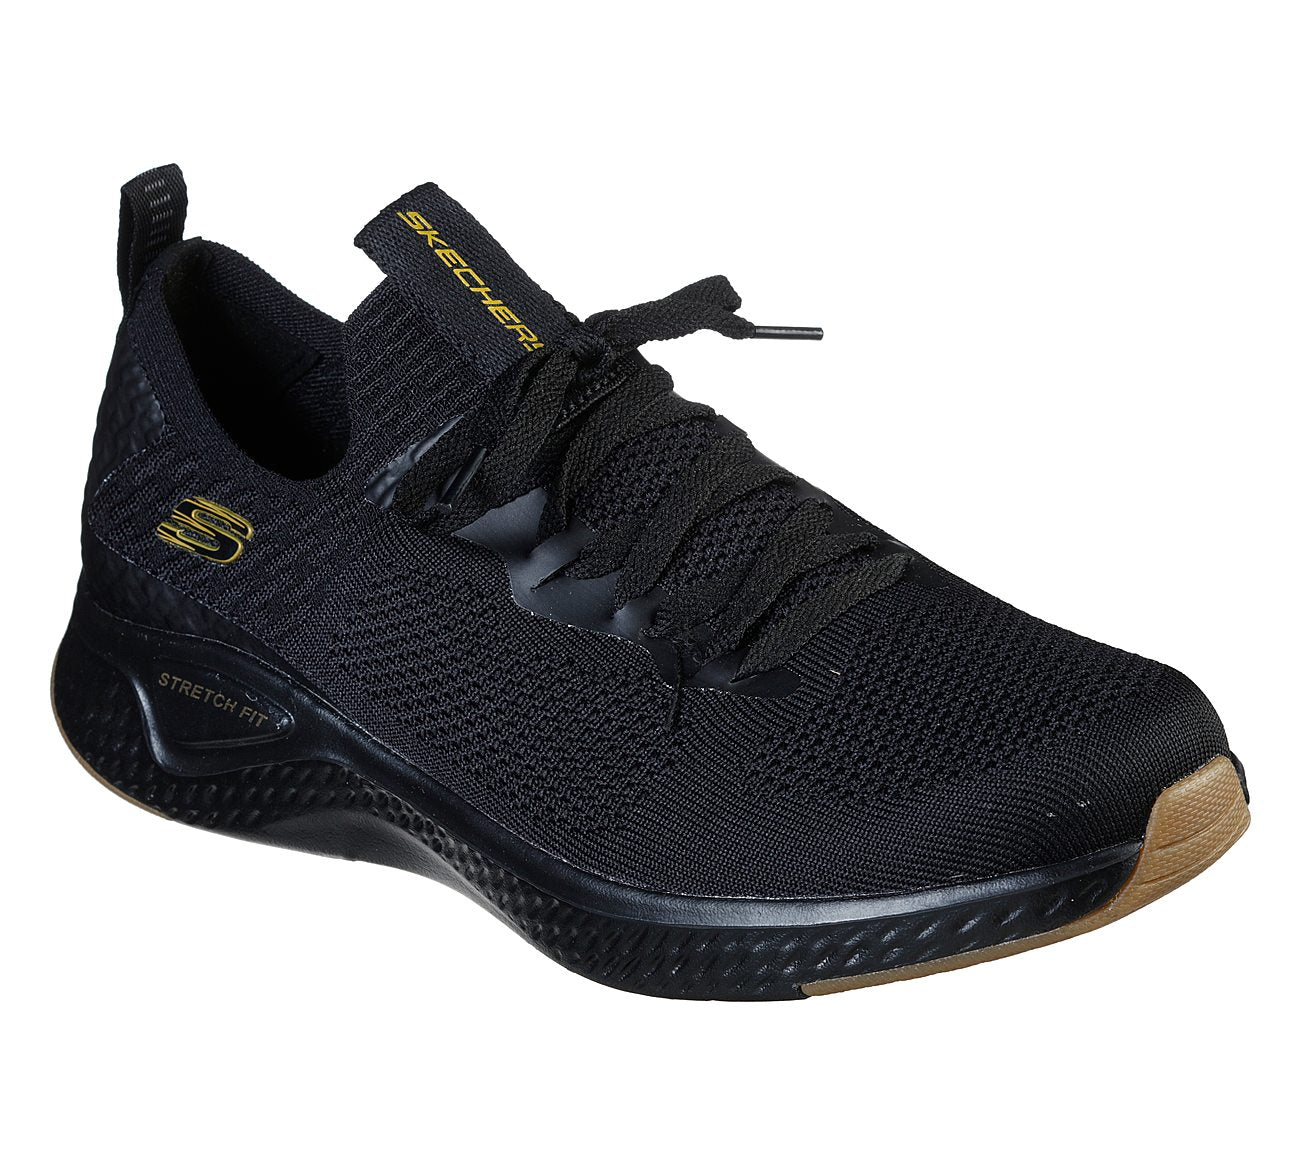 Baskets Skechers Solar Fuse - Valedge